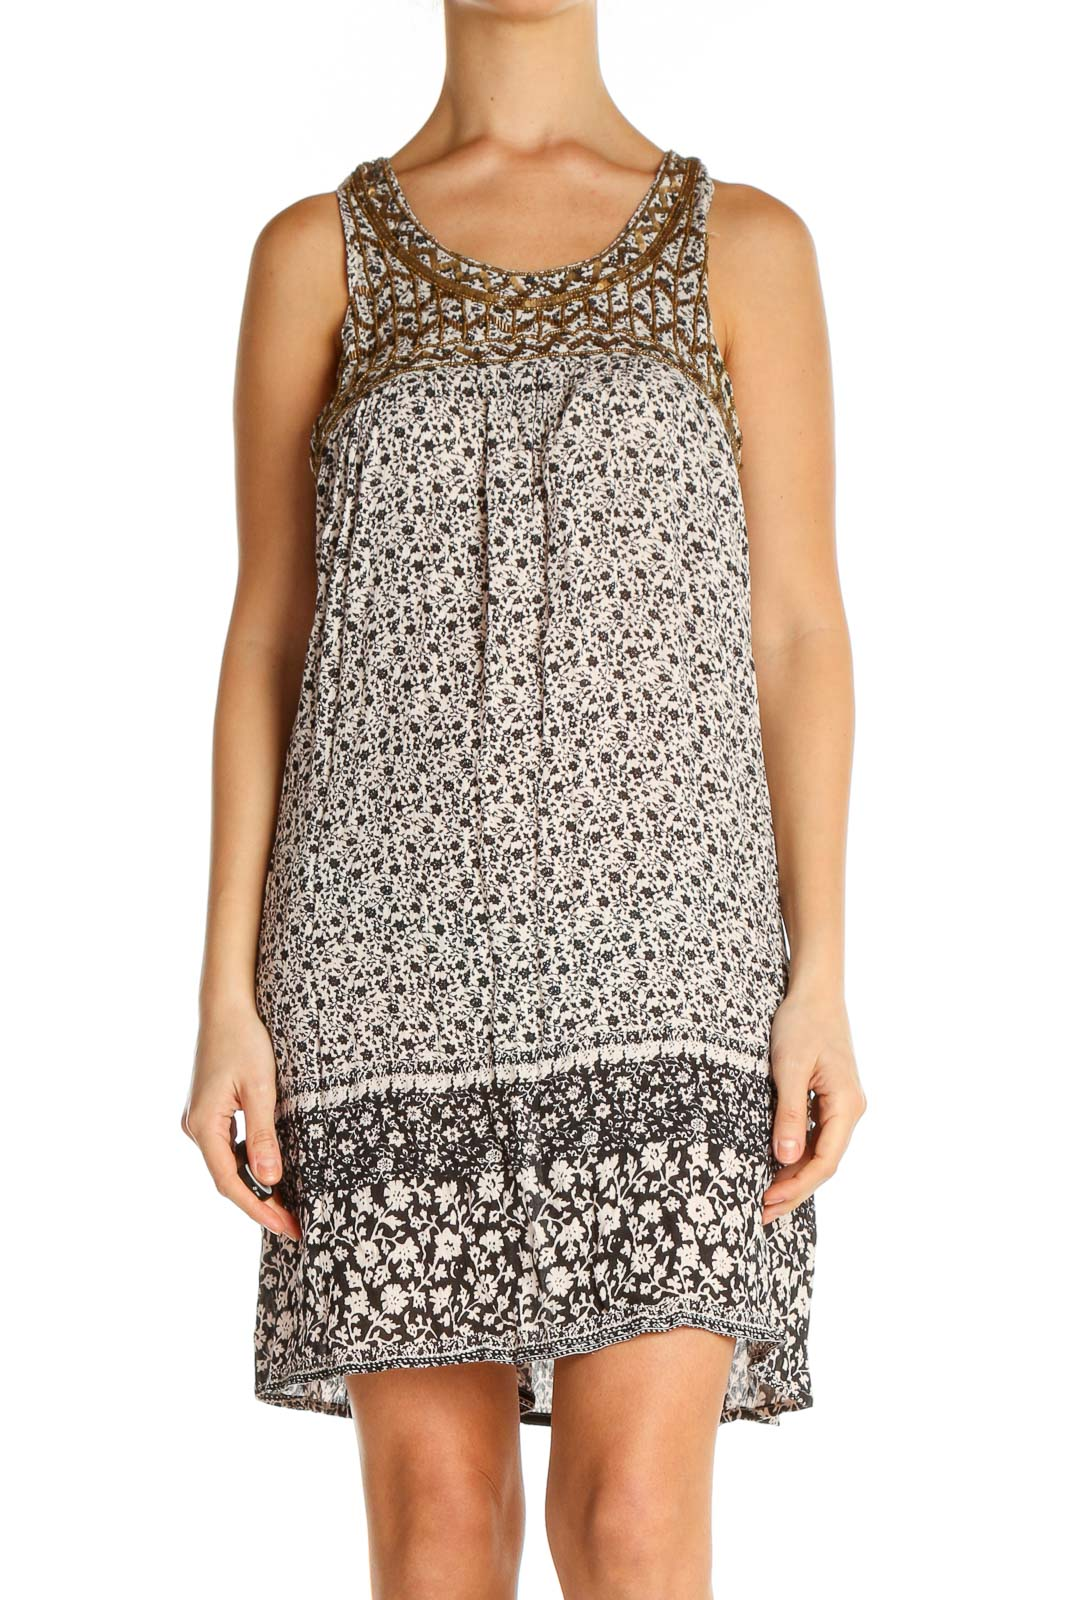 Beige Object Print Holiday A-Line Dress Front